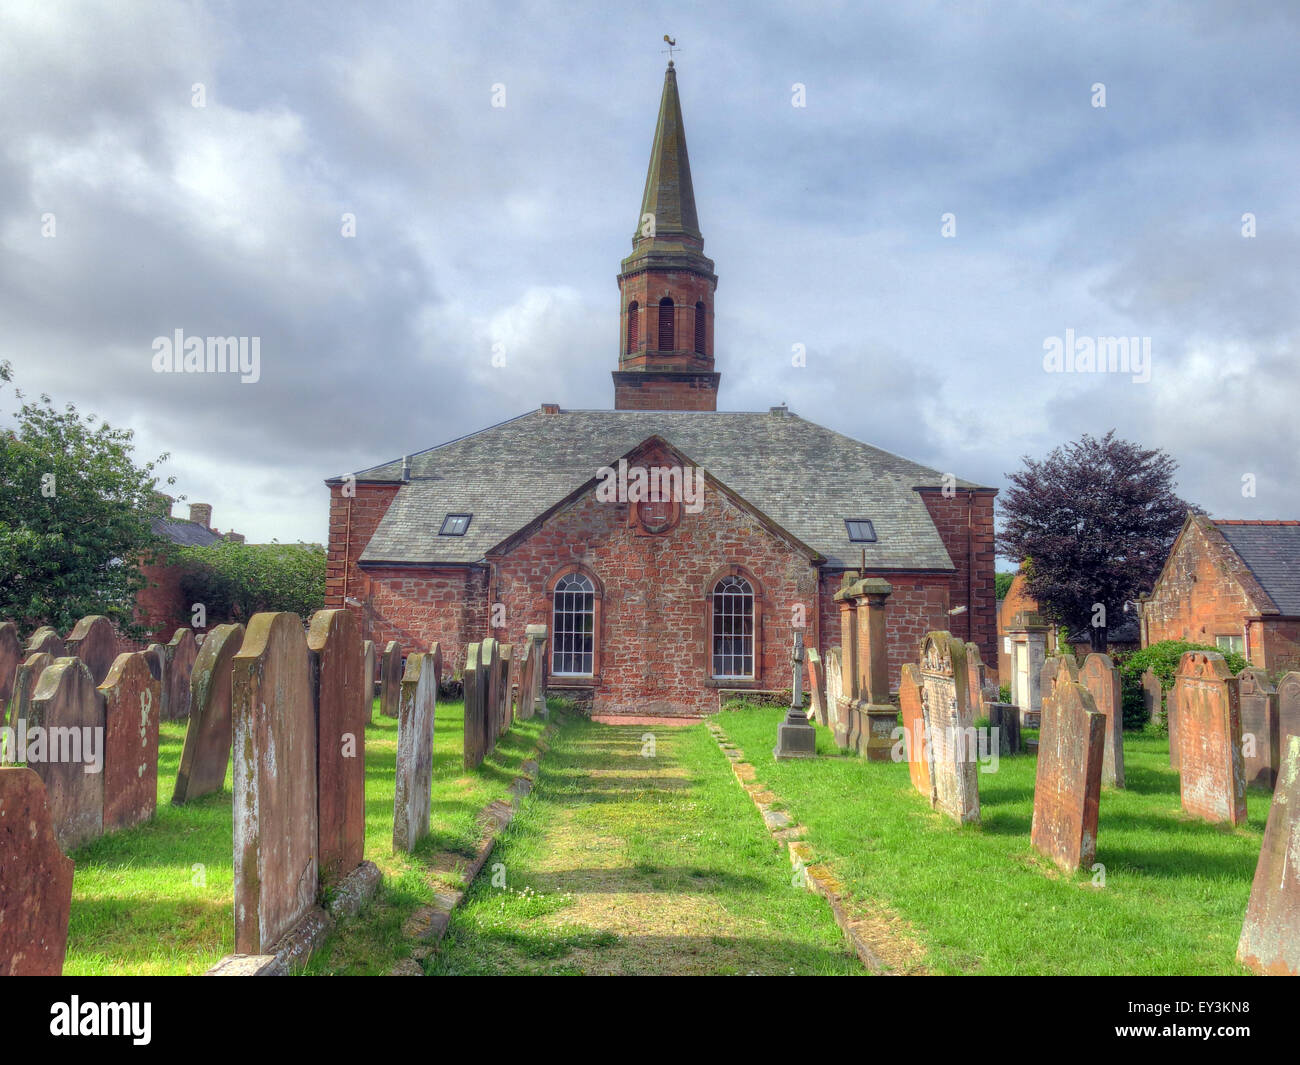 Annan,Old,Parish,Church,of,Scotland,Scottish,Churches,religion,Anglican,Anglicans,grave,graves,cross,wide,landscape,pano,panorama,tower,cemetery,GoTonySmith,Buy Pictures of,Buy Images Of